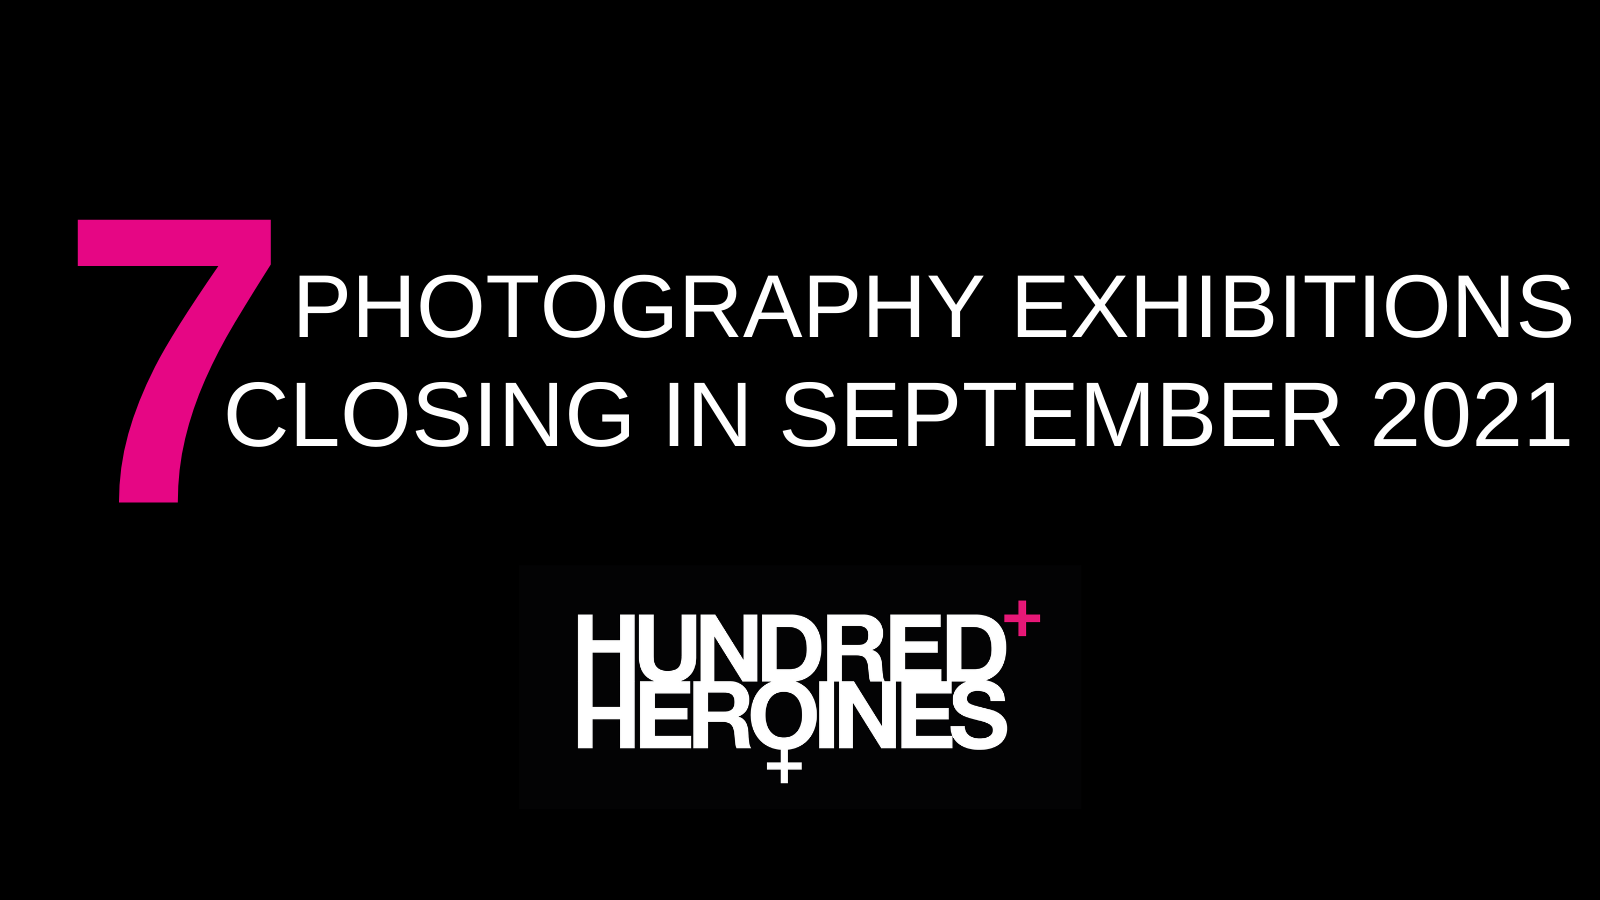 7_Photography_Exhibitions_Closing_In_Septmeber_2021_Hundred_Heroines_Women_in_Photography